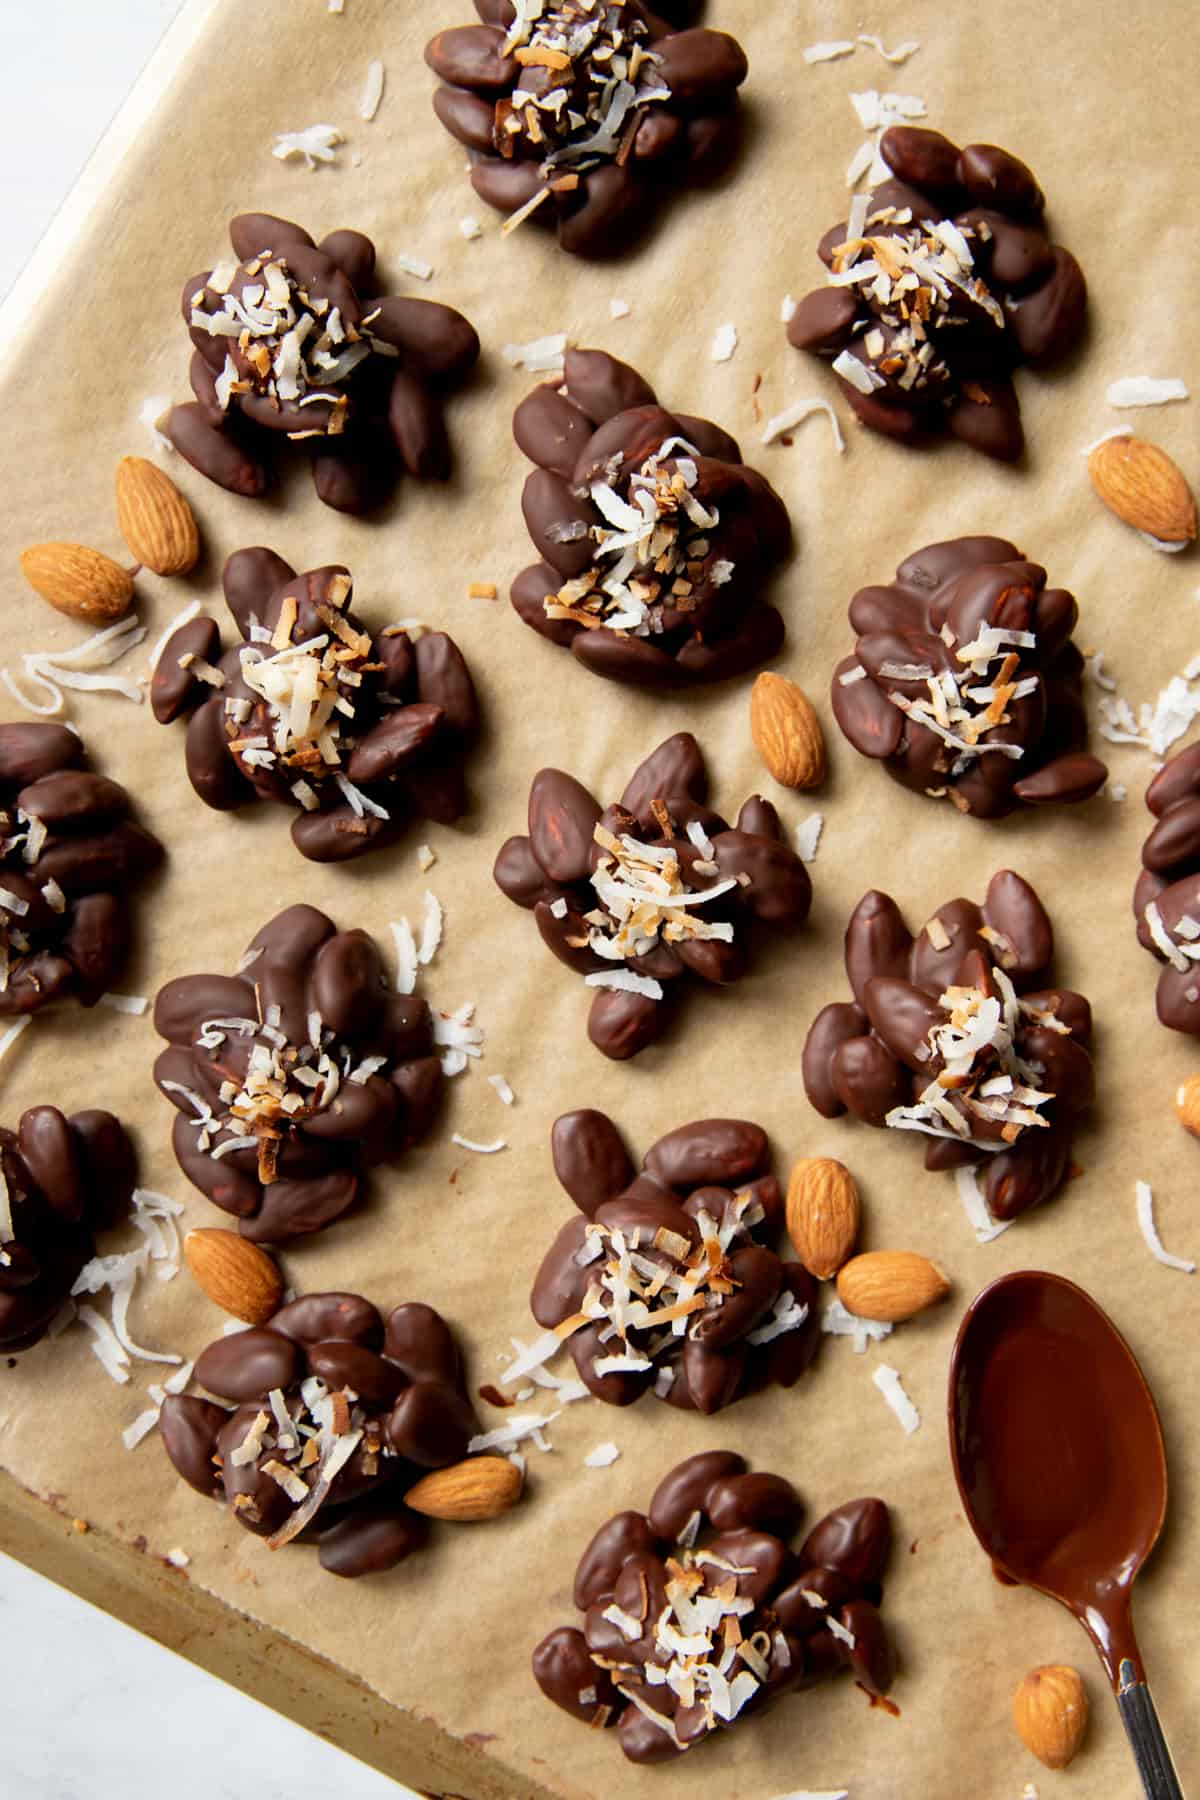 many chocolate almond clusters on a baking pan with raw almonds scattered around